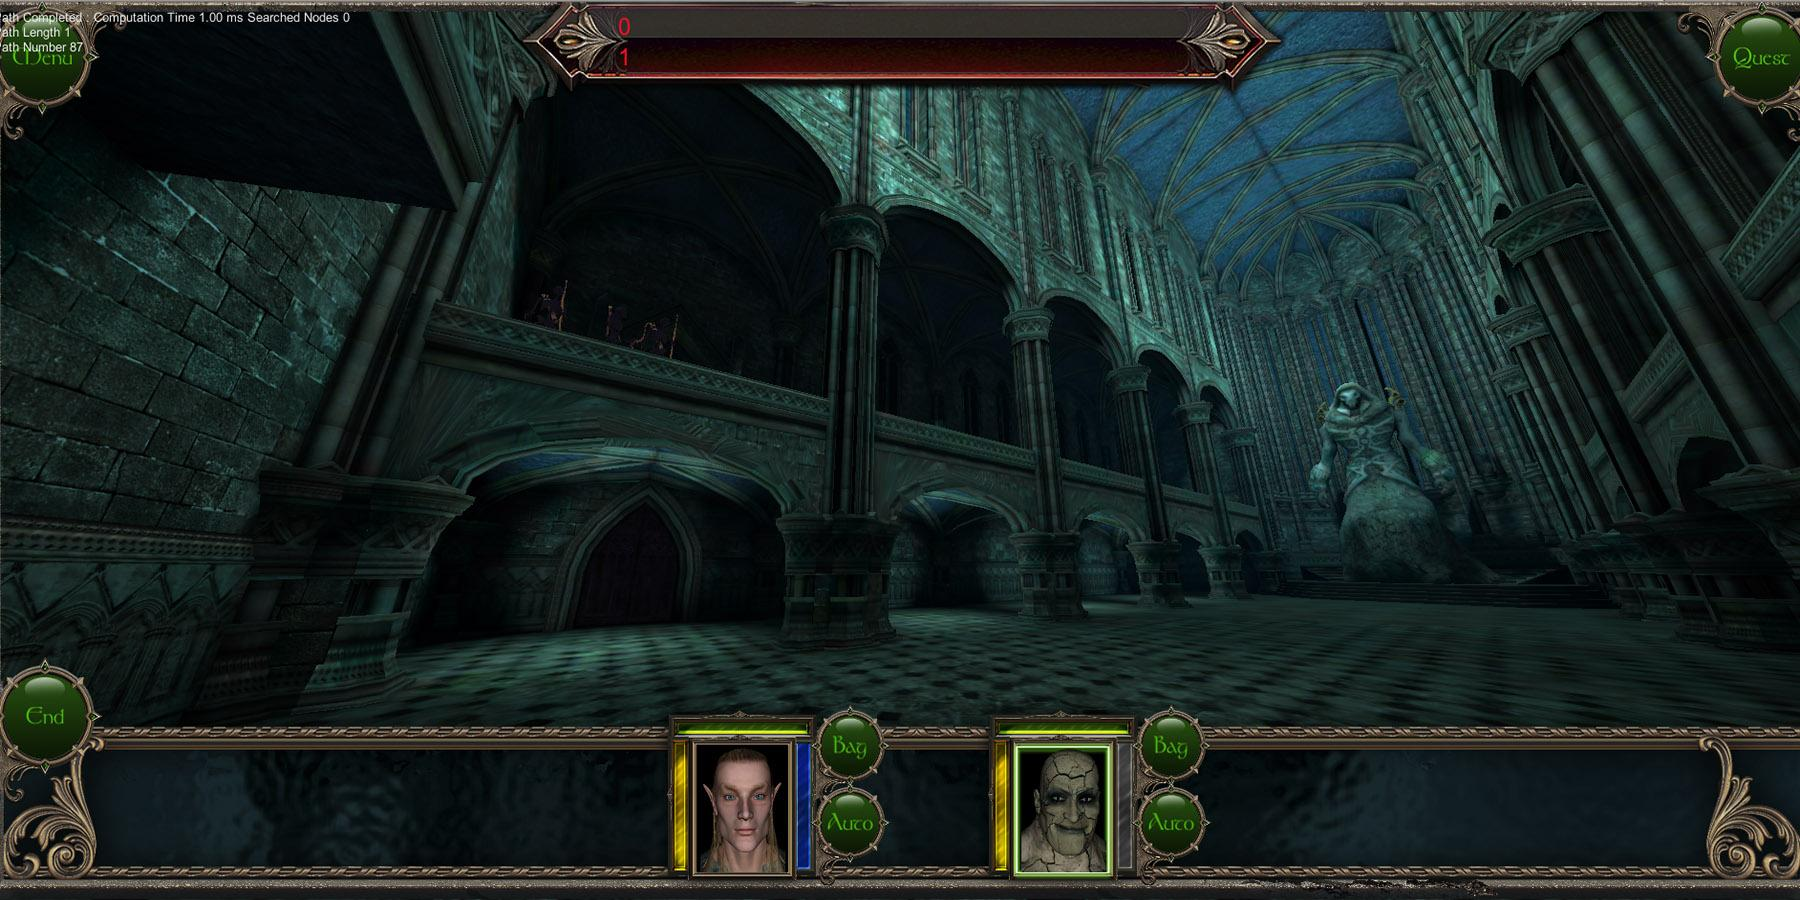 Axe and Fate HD 3D RPG Screenshot 2